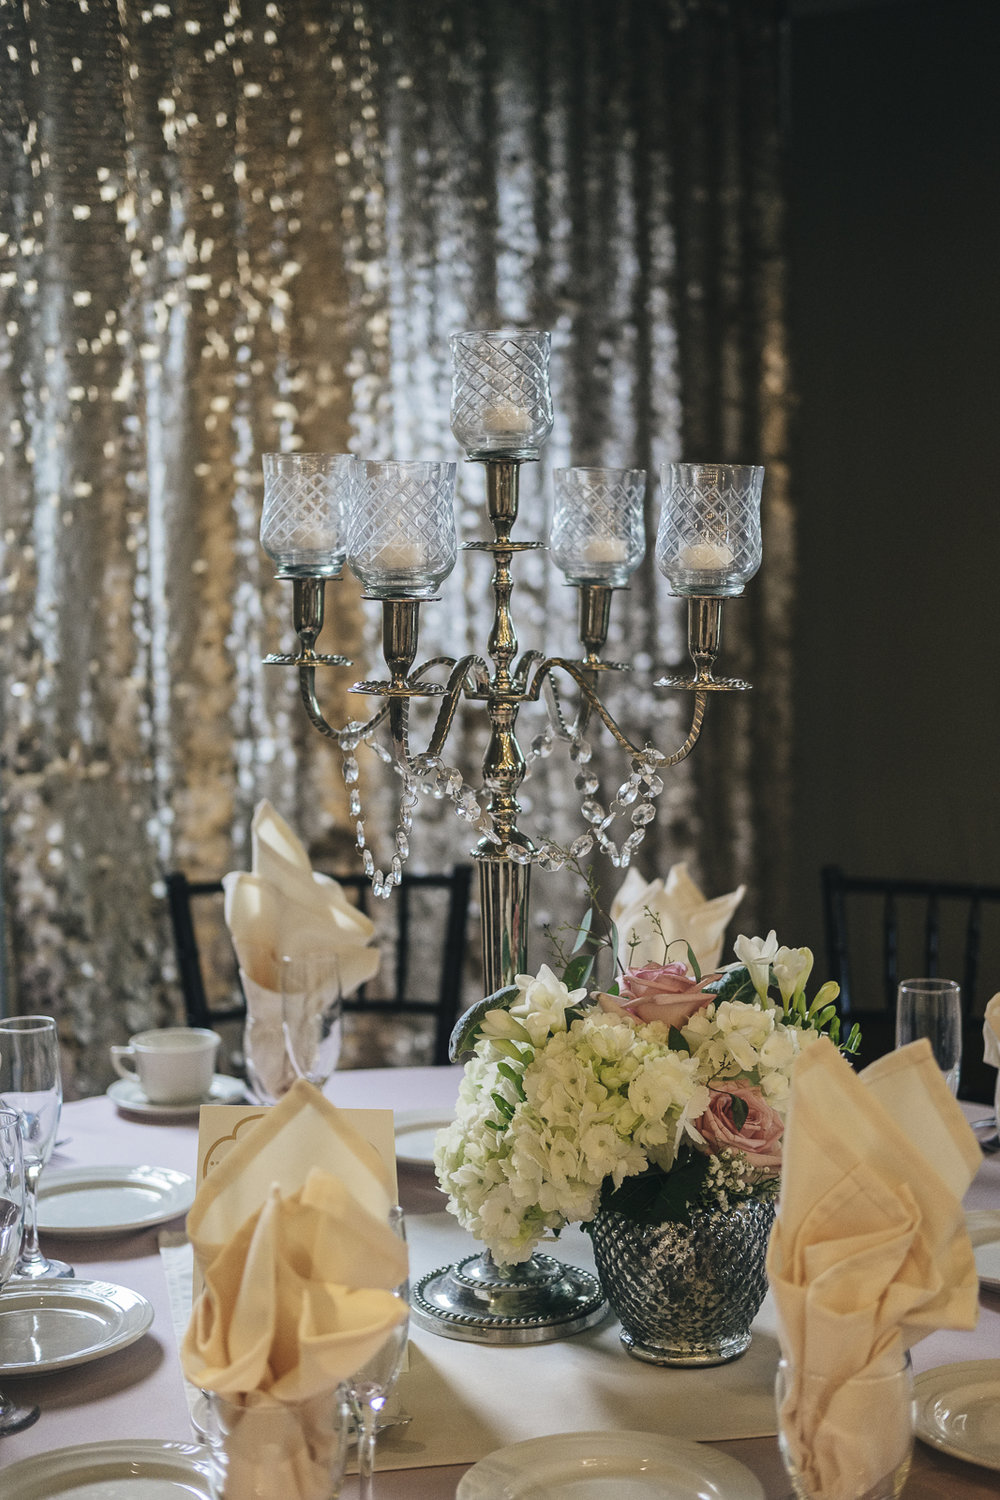 La Boutique Nostalgie wedding reception decor.